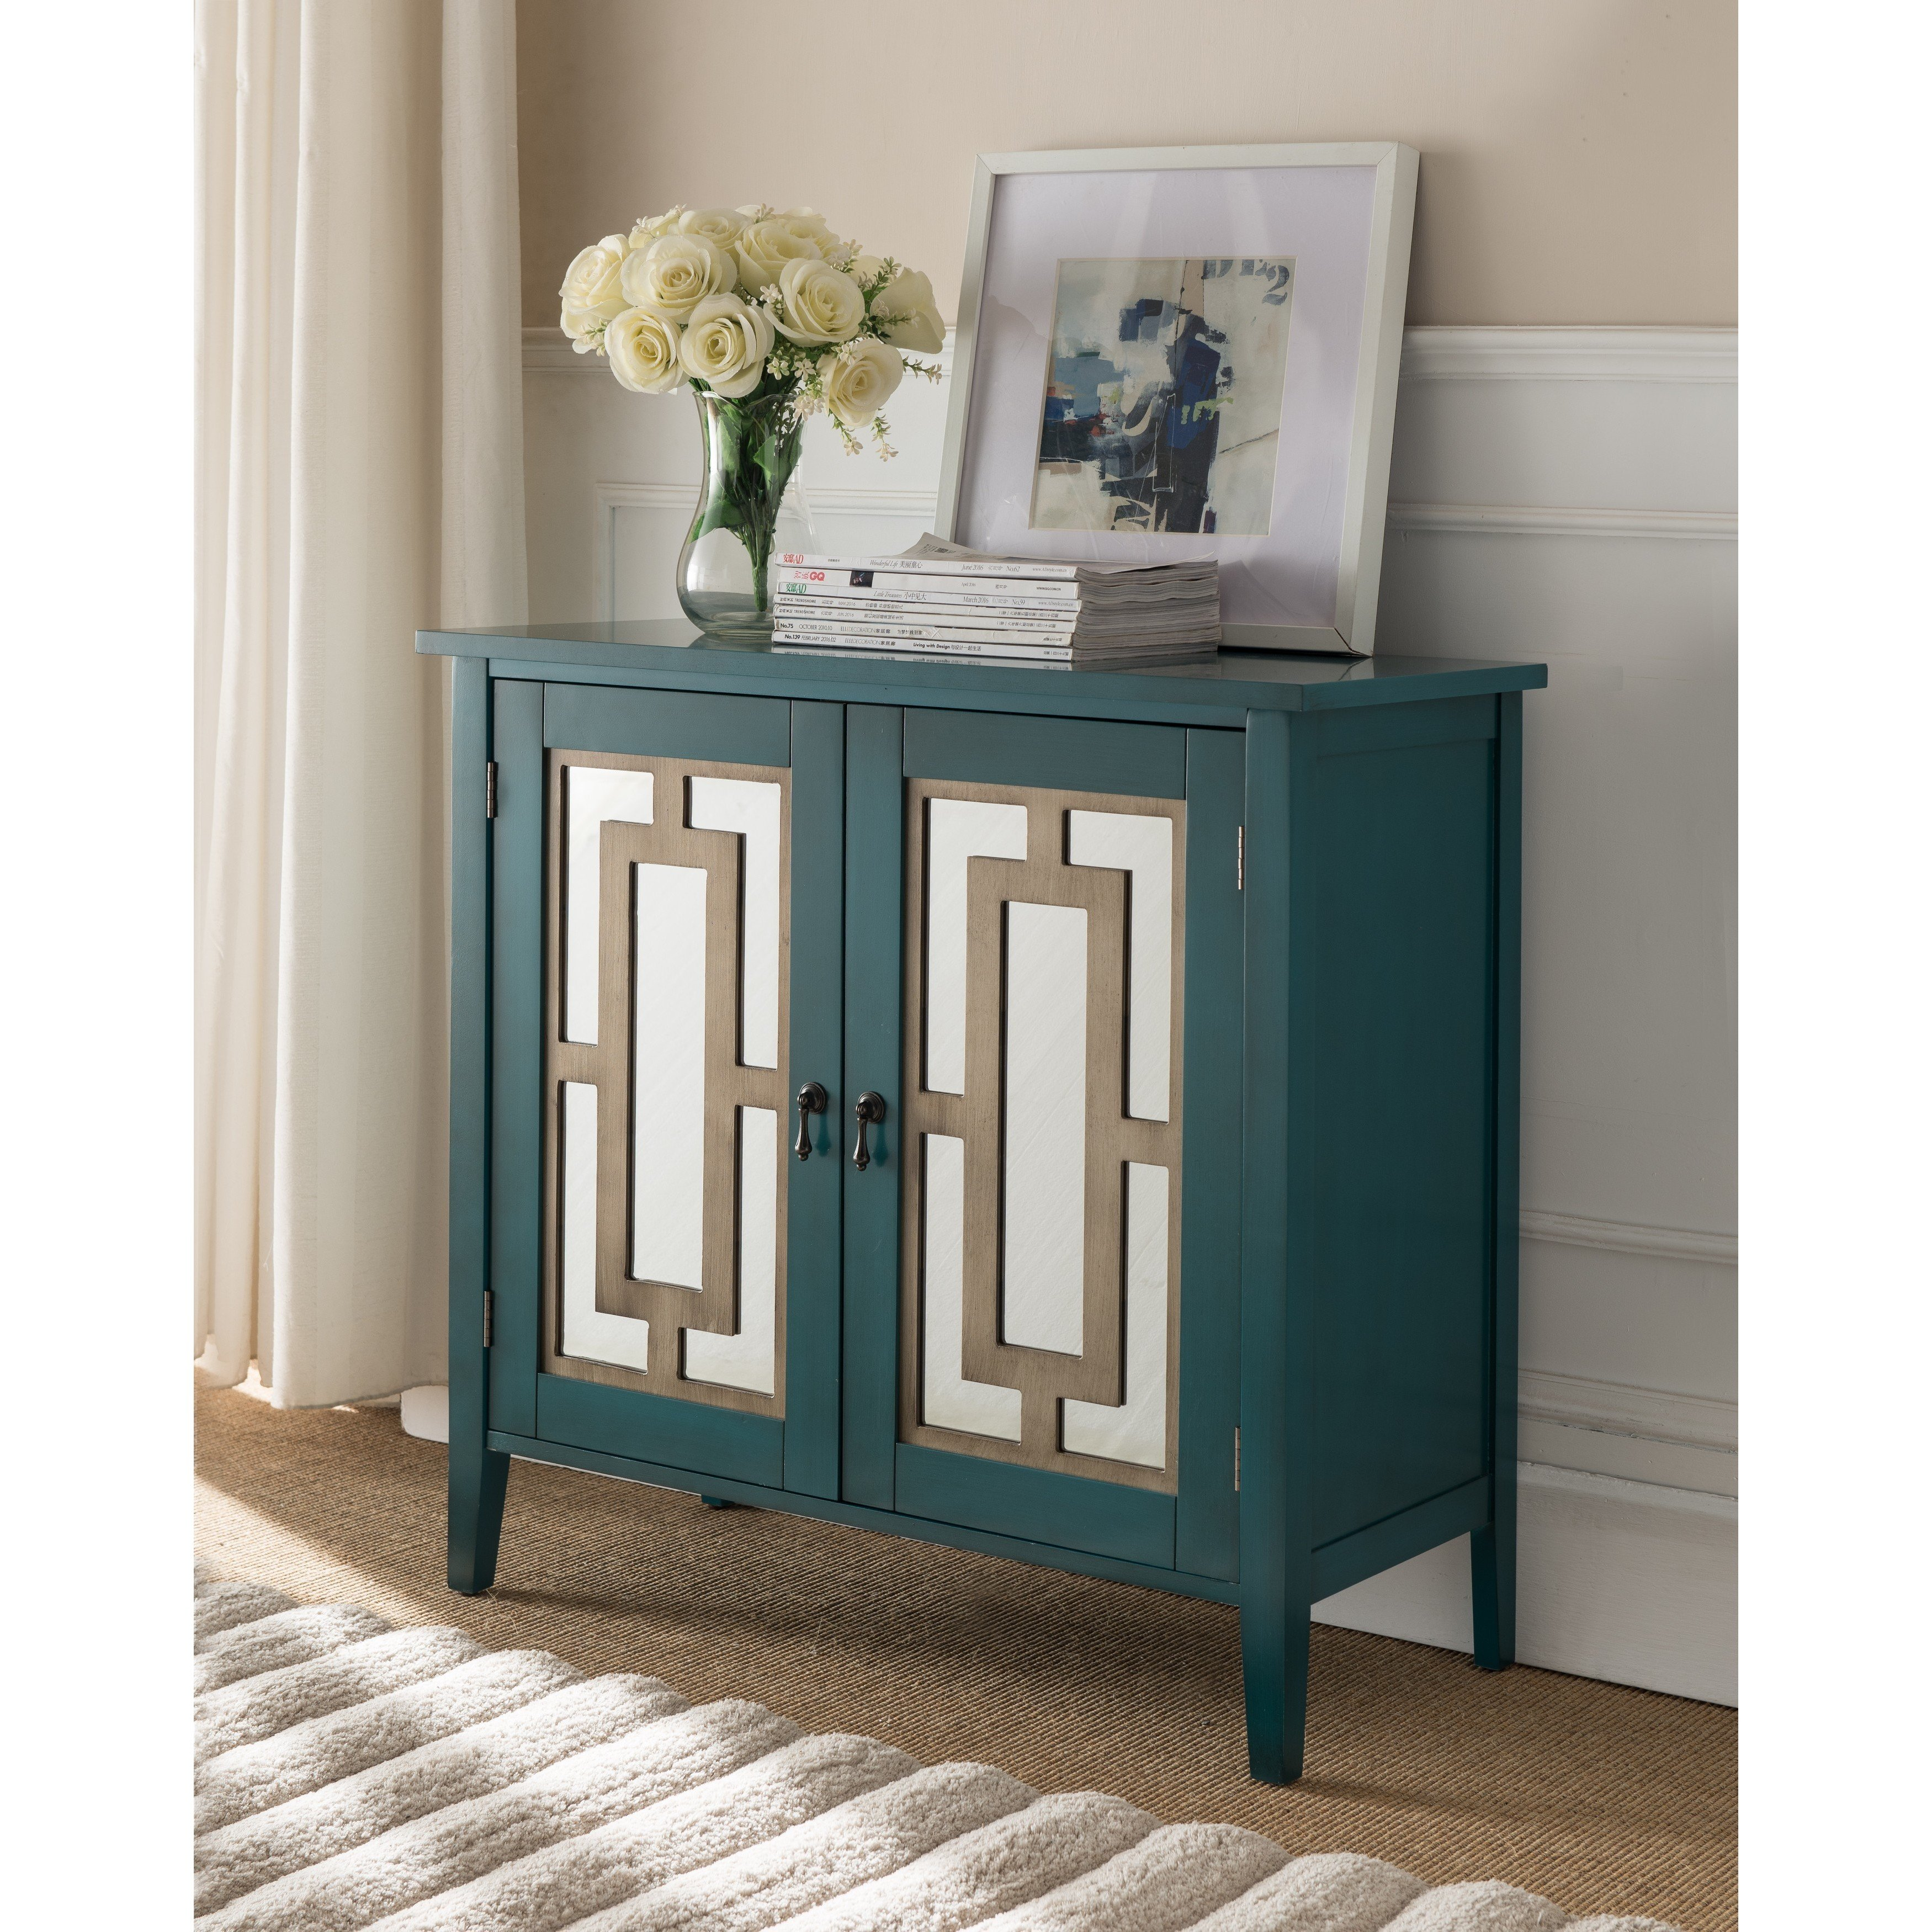 and furniture inc antique blue wood door console table fretwork accent free shipping today silver sofa west elm coupon code metal side square fall tablecloth small industrial end